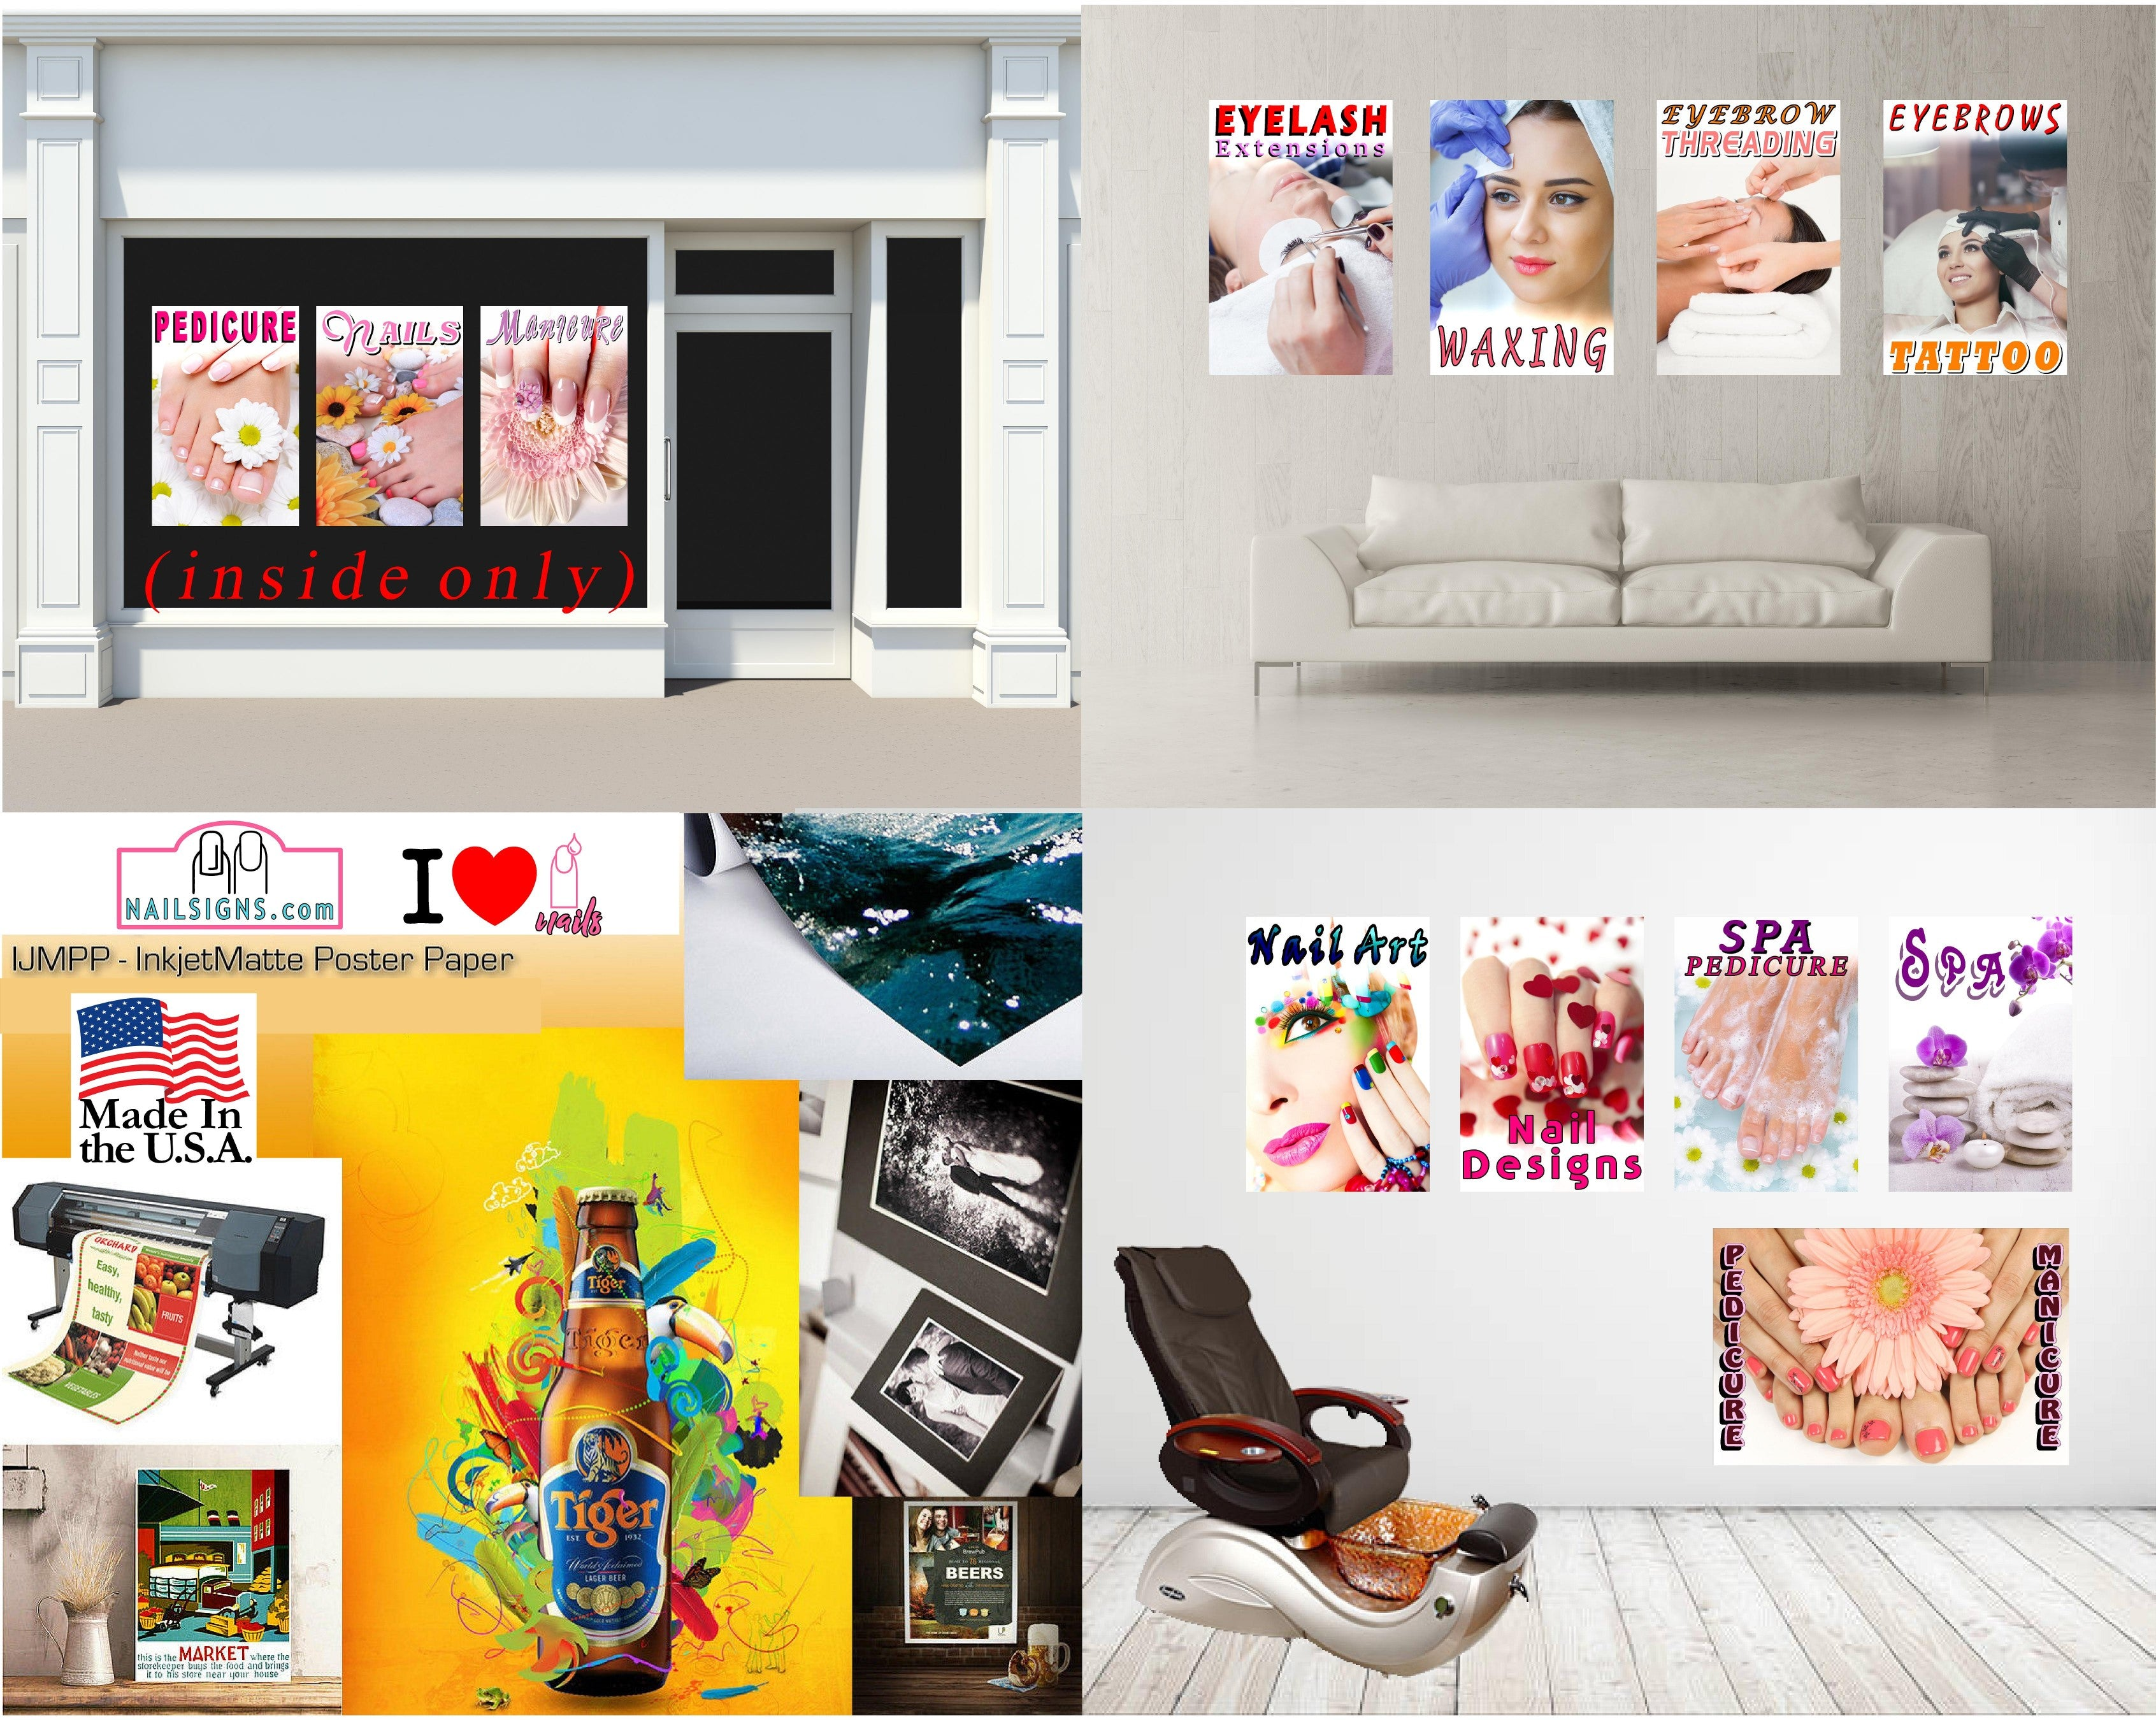 Manicure 07 Photo-Realistic Paper Poster Premium Matte Interior Inside Sign Advertising Marketing Wall Window Non-Laminated Vertical